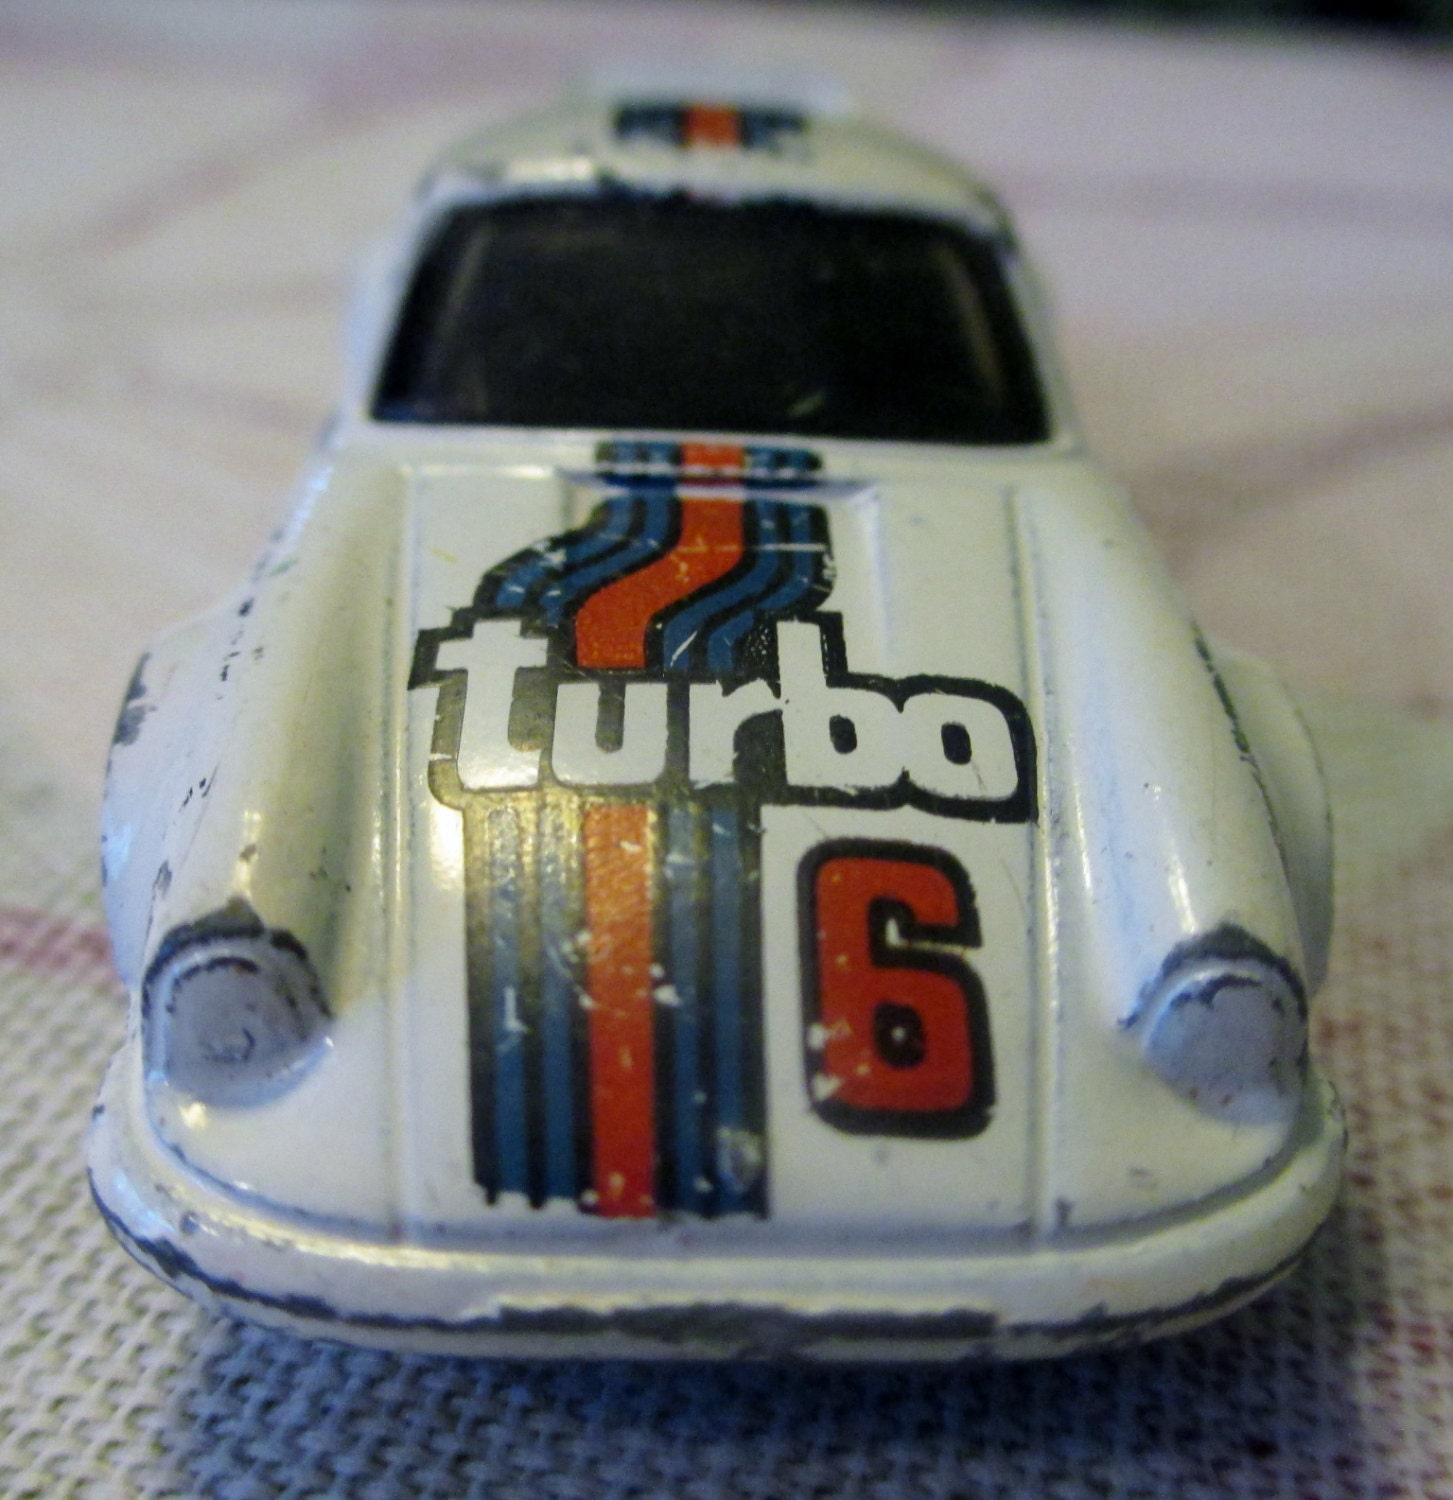 Hot Wheels P 911 Turbo 6 Porsche Vintage Toy By